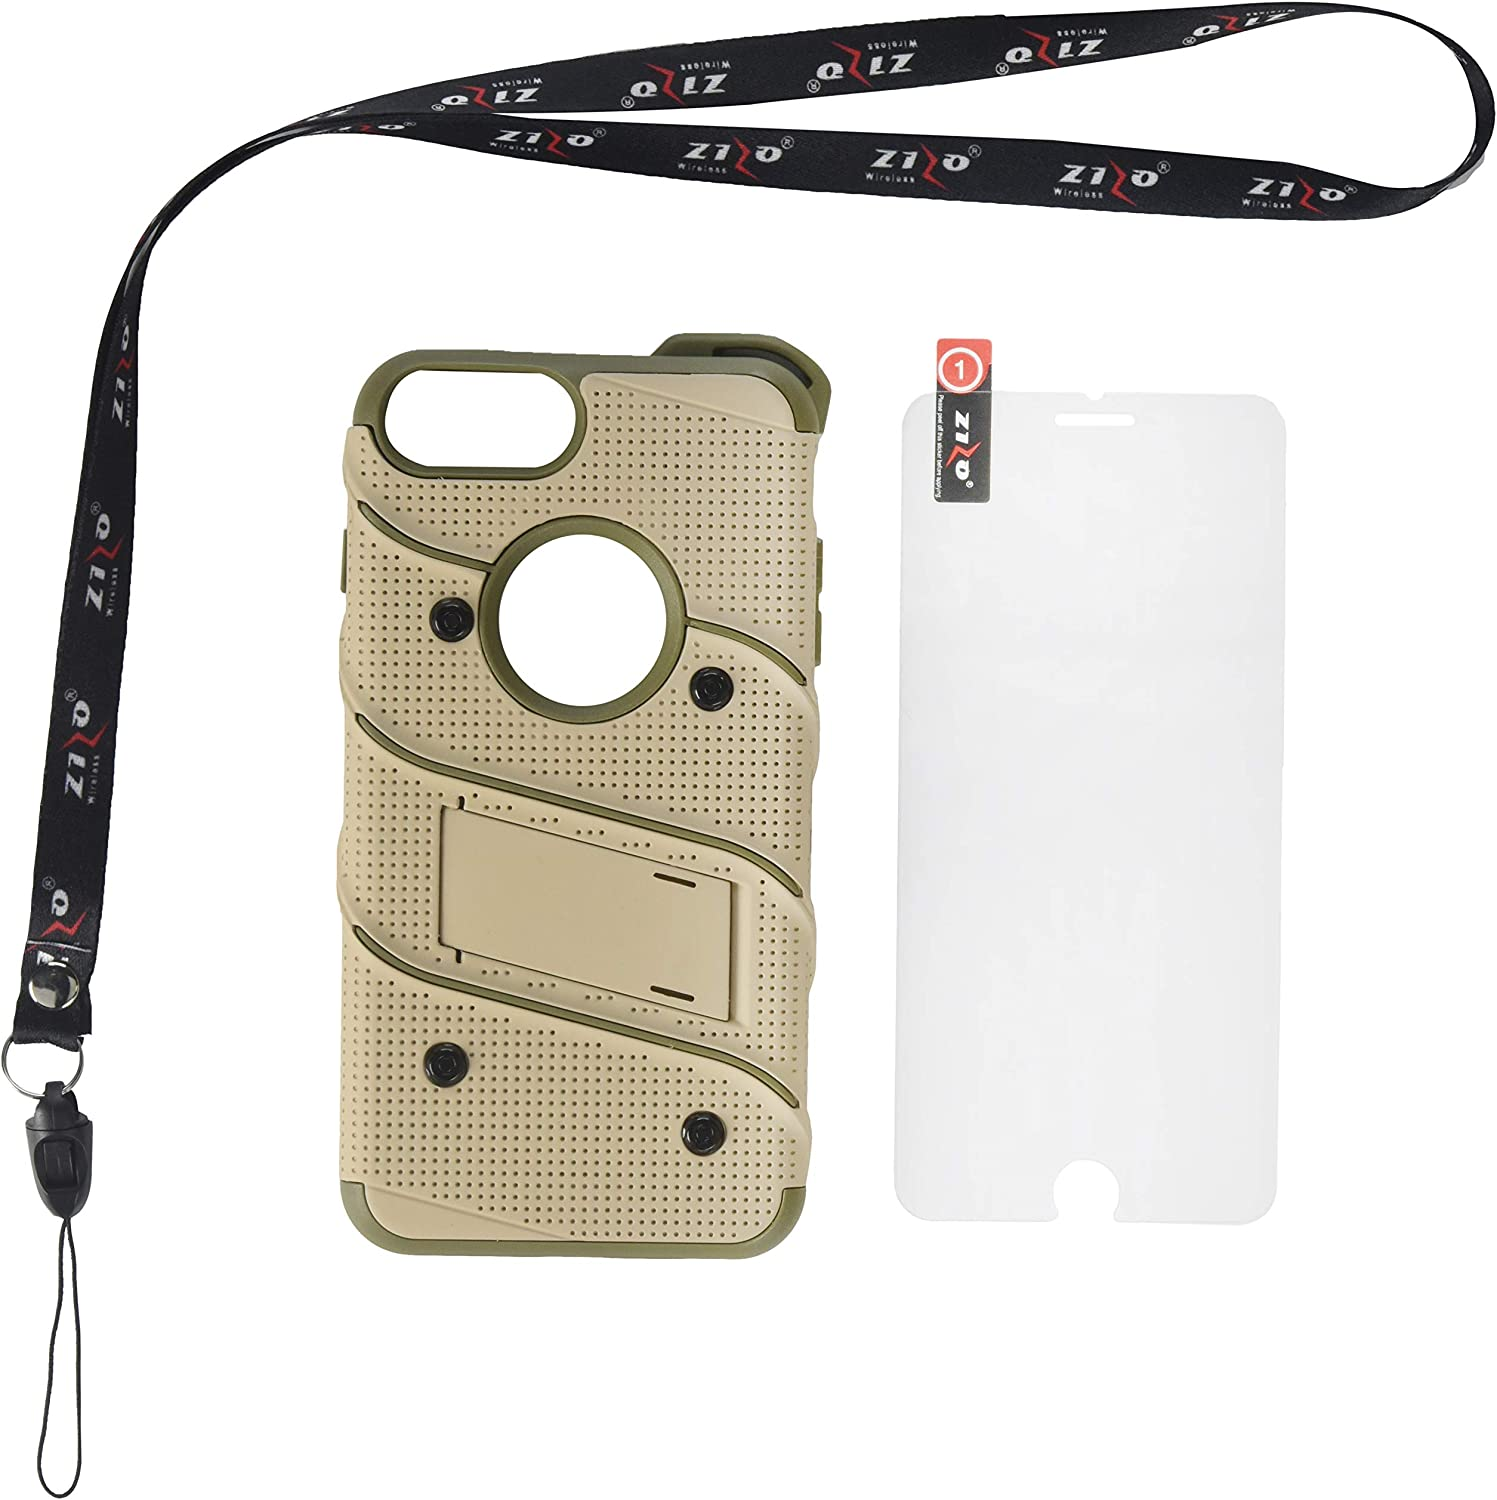 ZIZO Bolt Series for iPhone 8 Plus Case Military Grade Drop Tested Glass Screen Protector Holster iPhone 7 Plus case Desert TAN CAMO Green